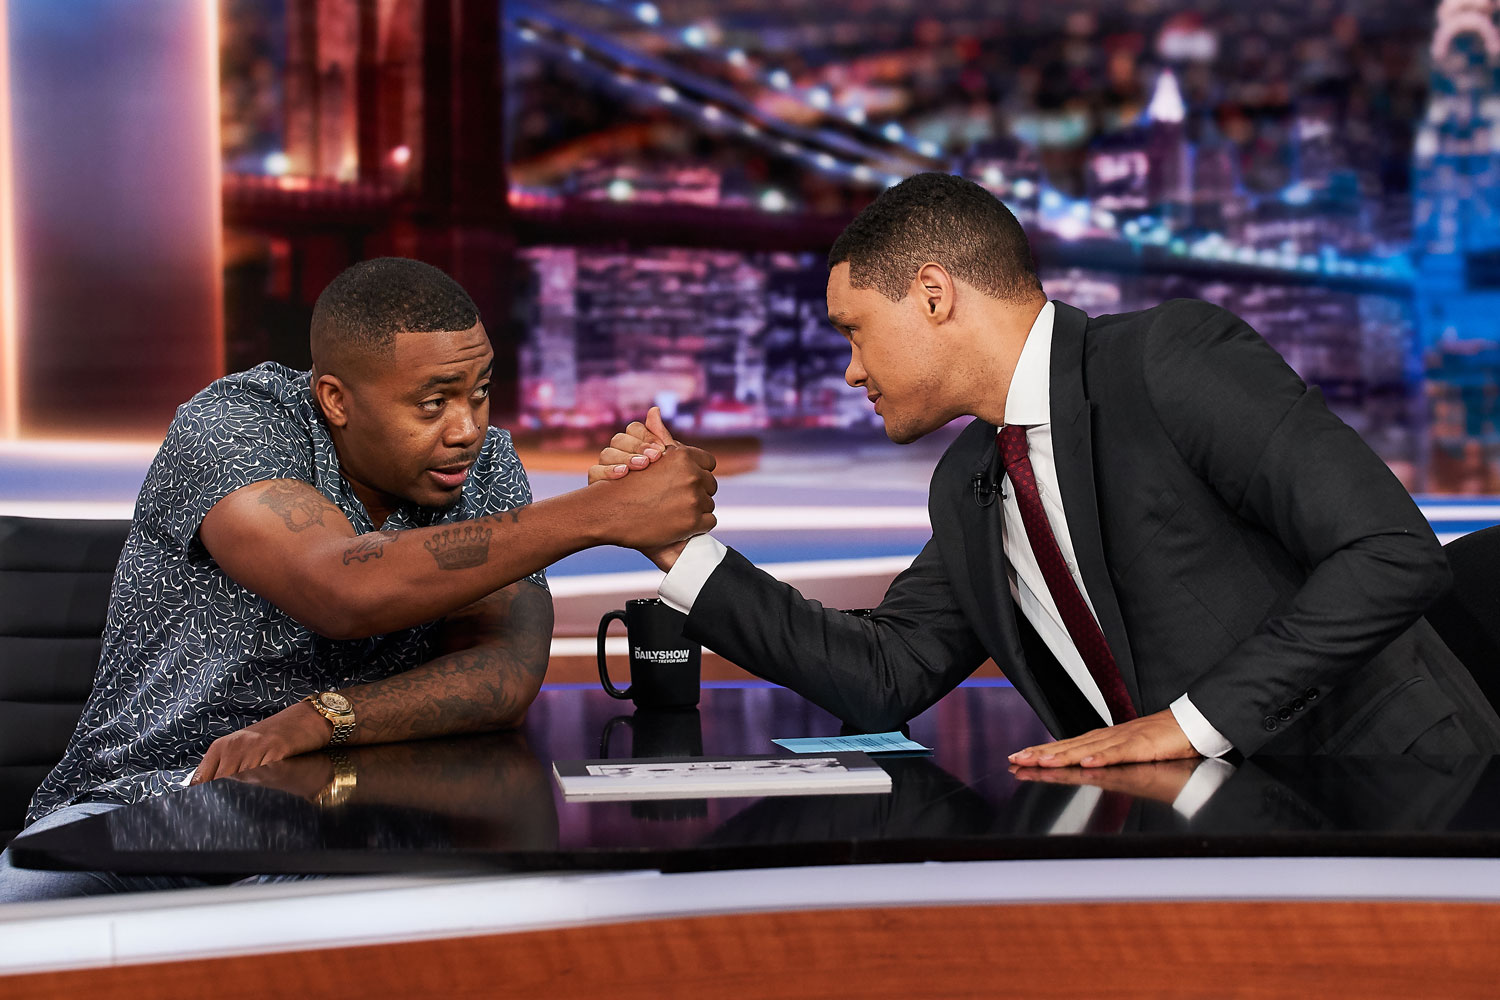 Nas Talks Lost Tapes 2 Hip Hop History On The Daily